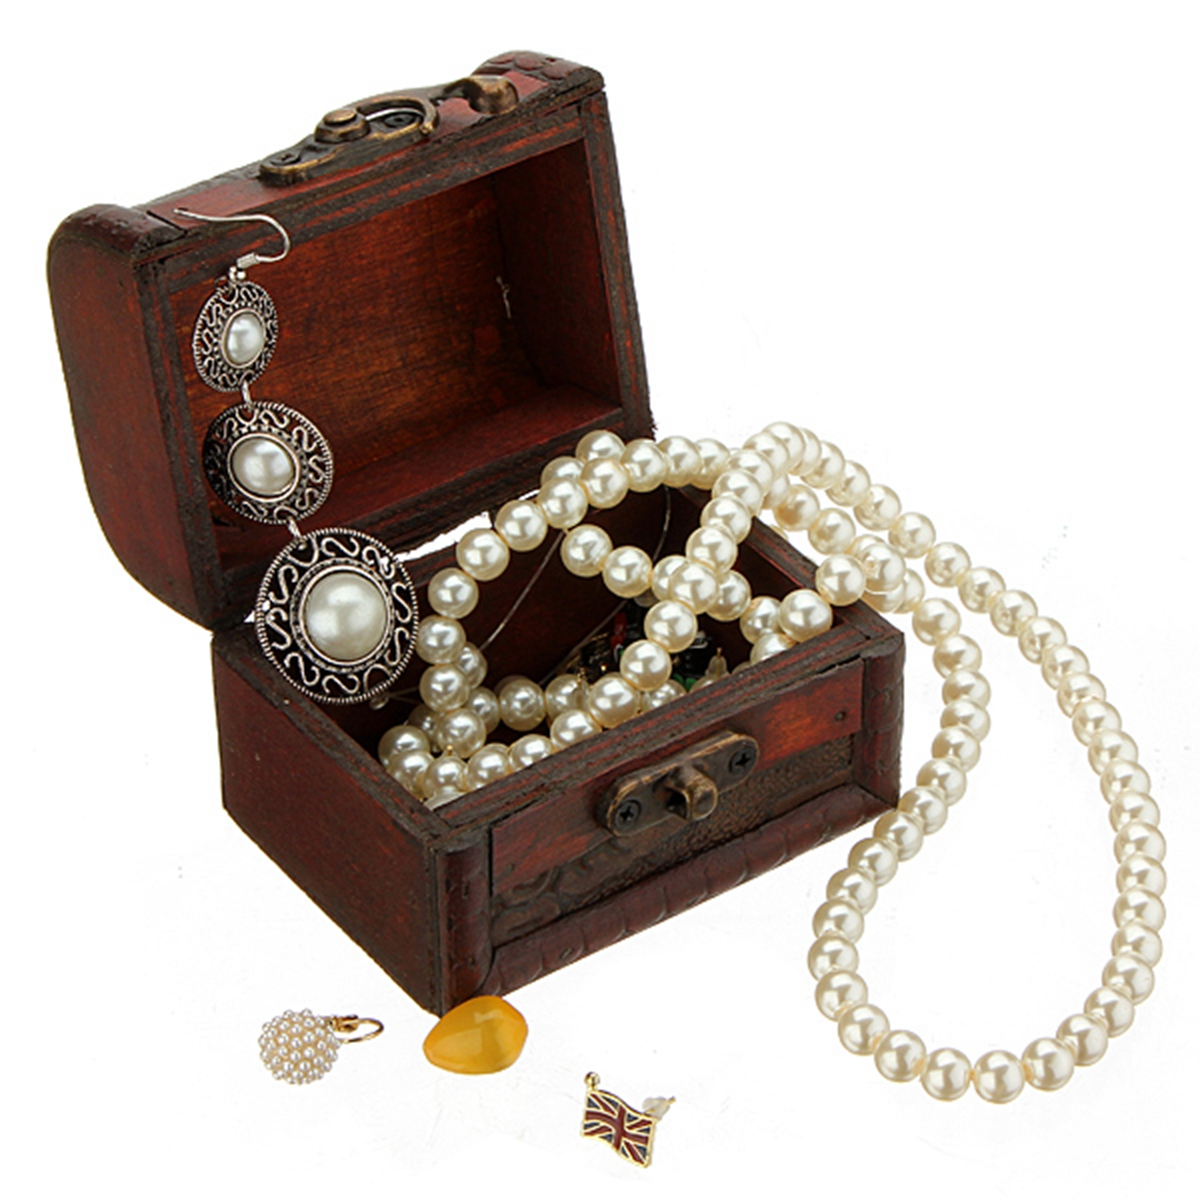 uk vintage jewelry pearl necklace bracelet gift box